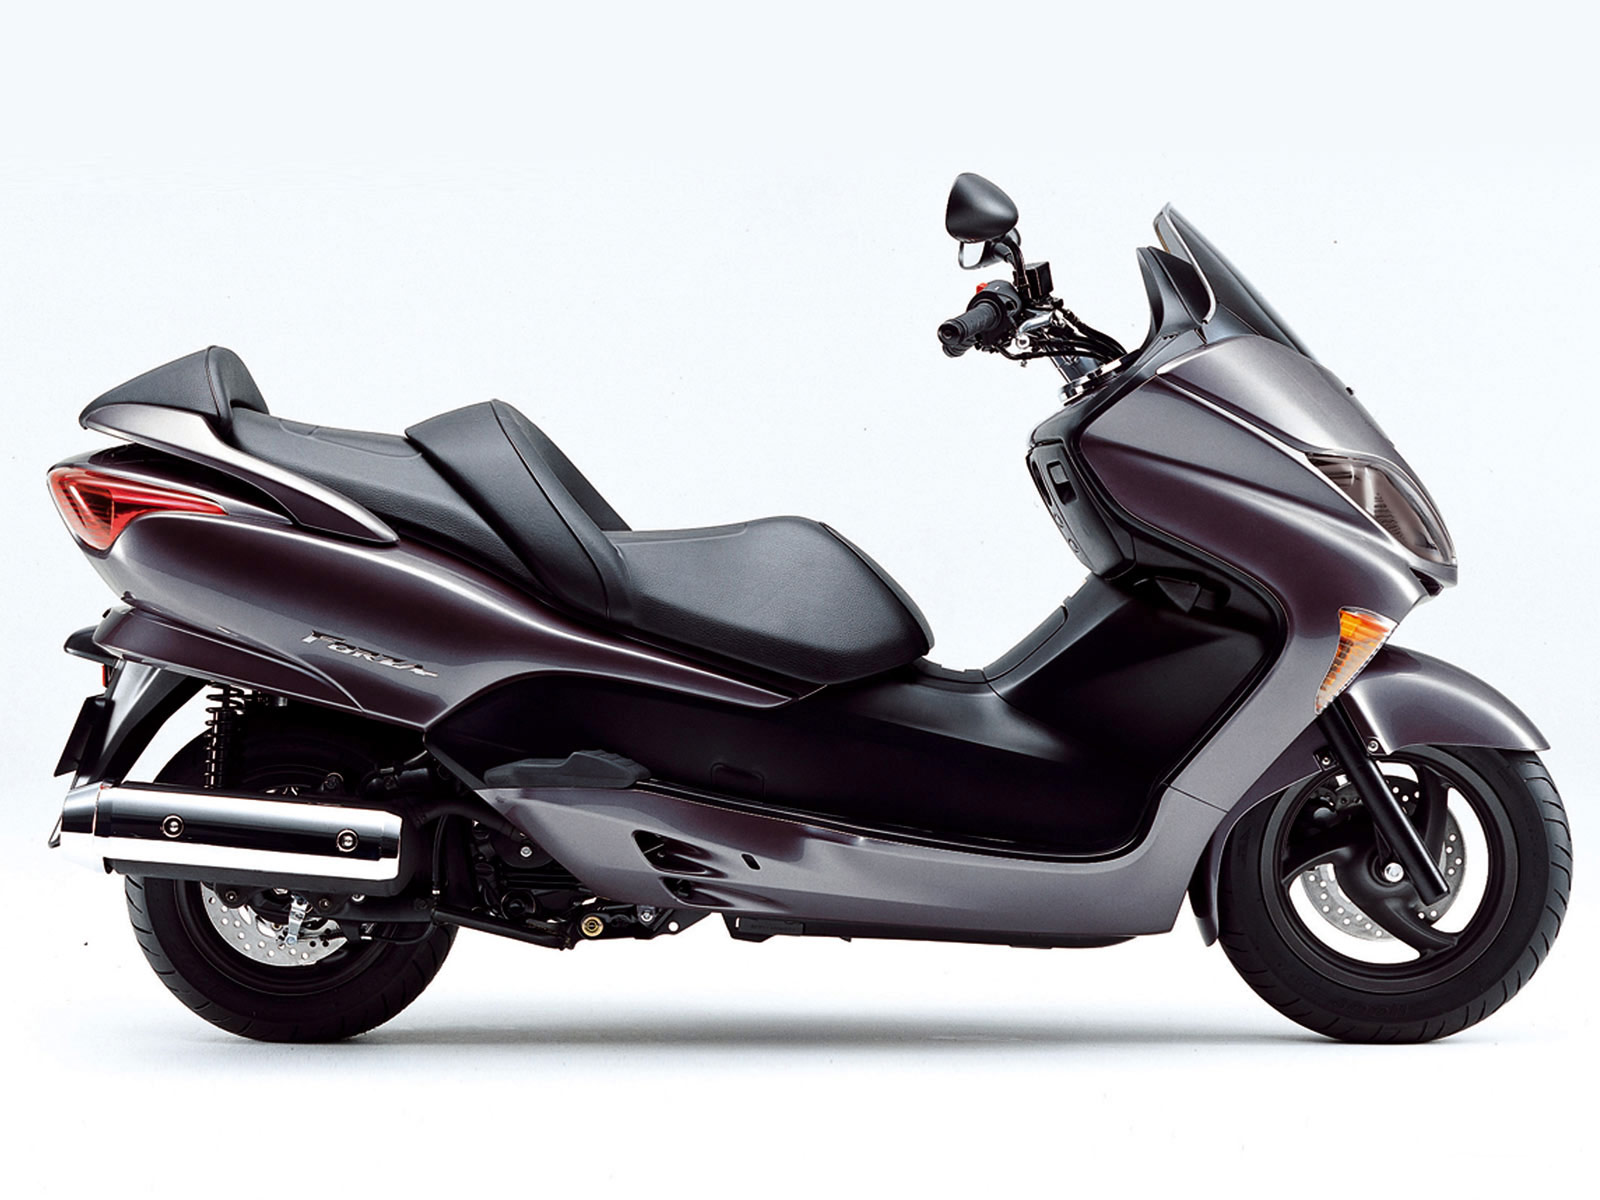 2005 Honda Forza accident lawyers, scooter pictures